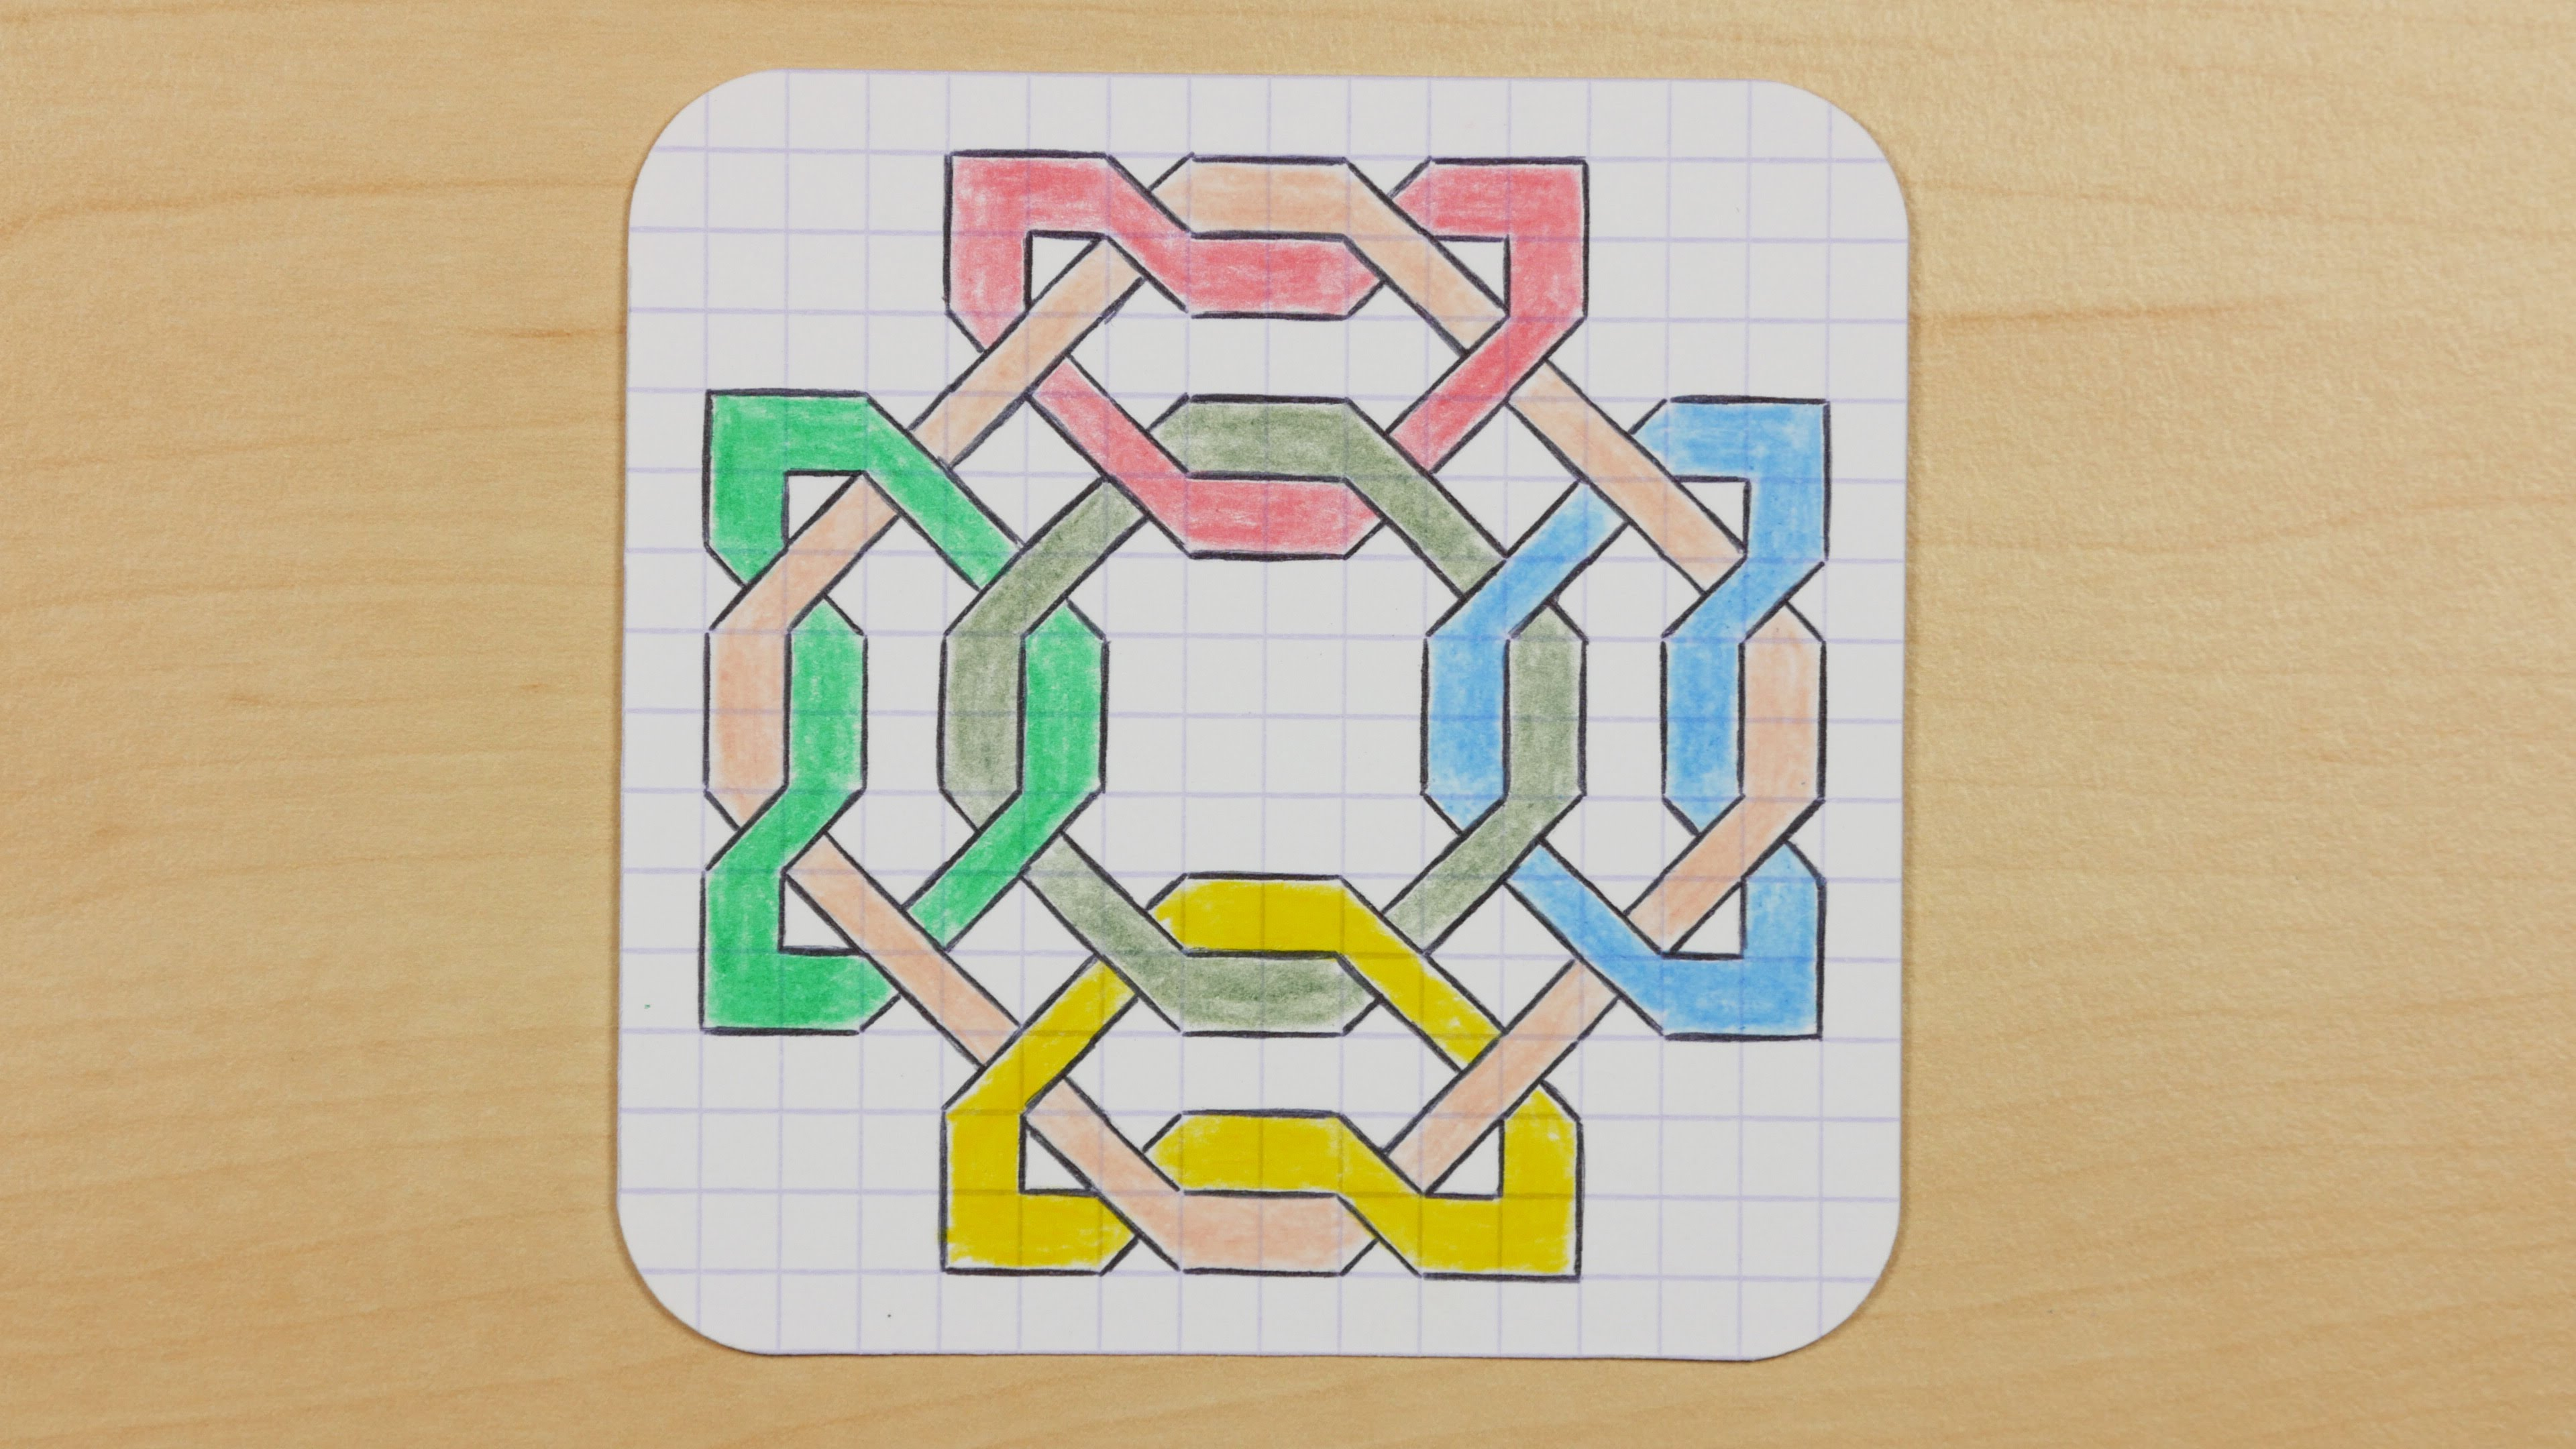 Drawn optical illusion graph paper Graph YouTube Draw Knots Doodle